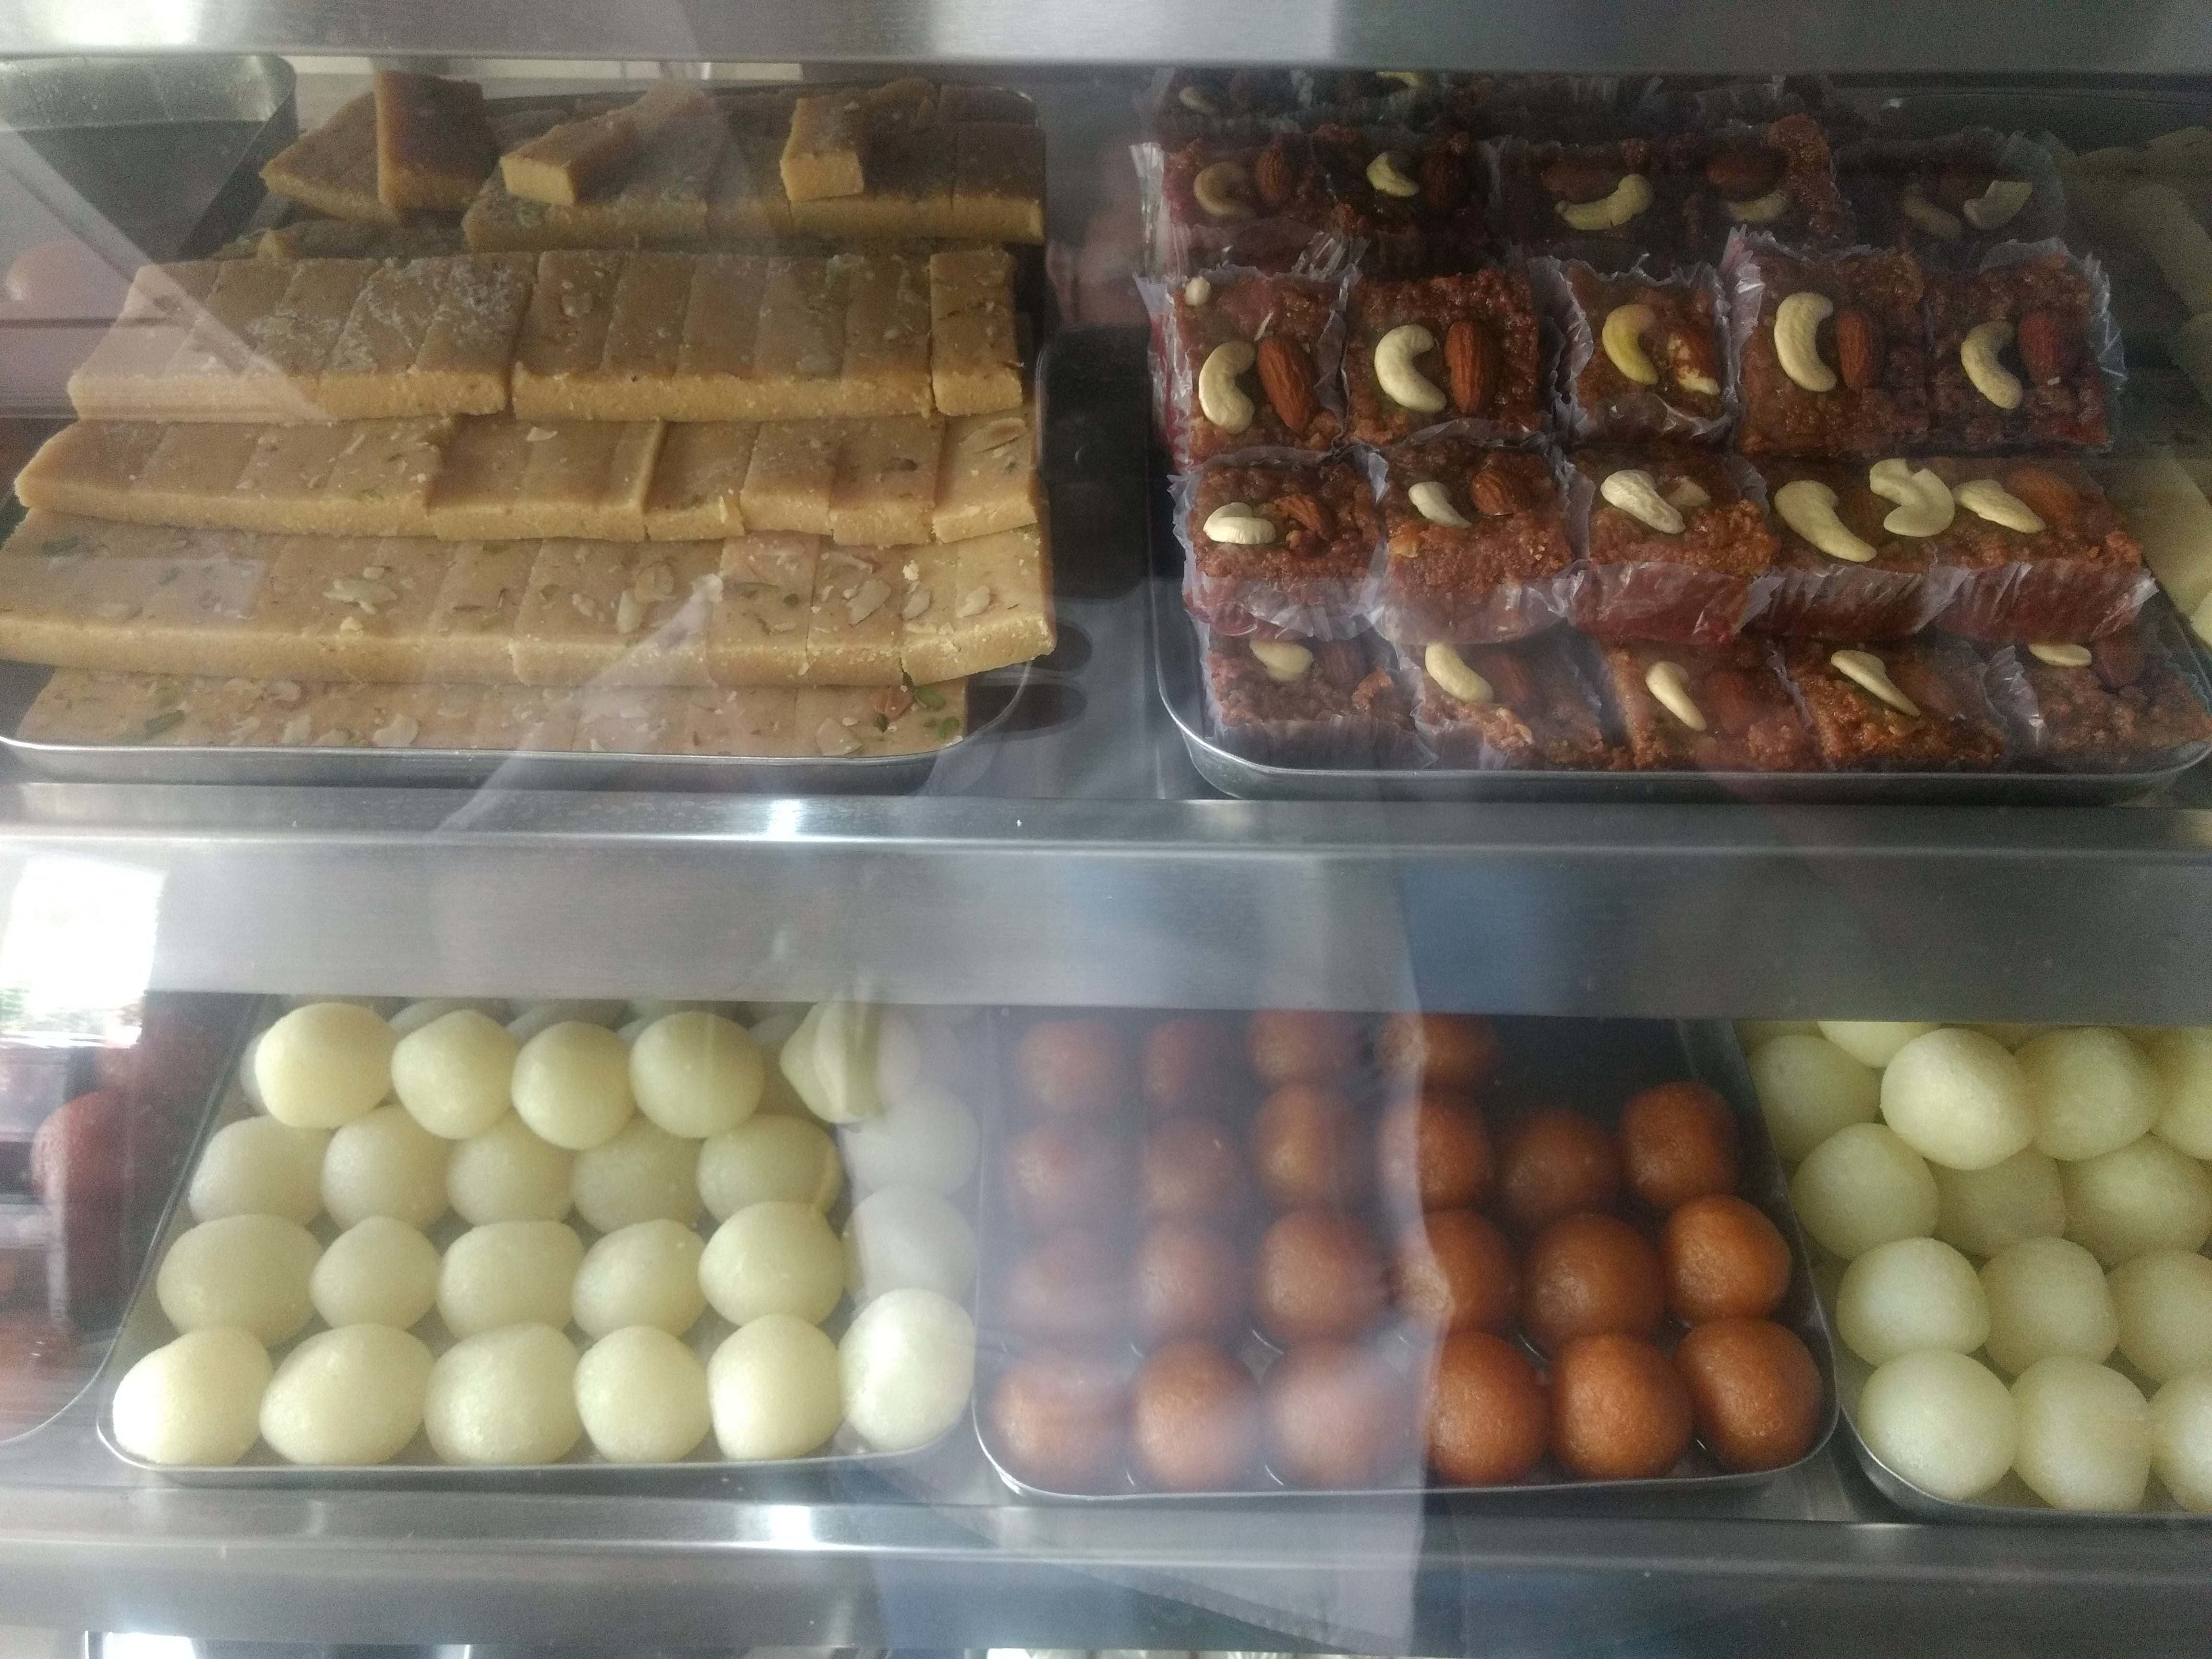 Paul Sweets Dairy And Dhaba - Sector 17C - Chandigarh Image